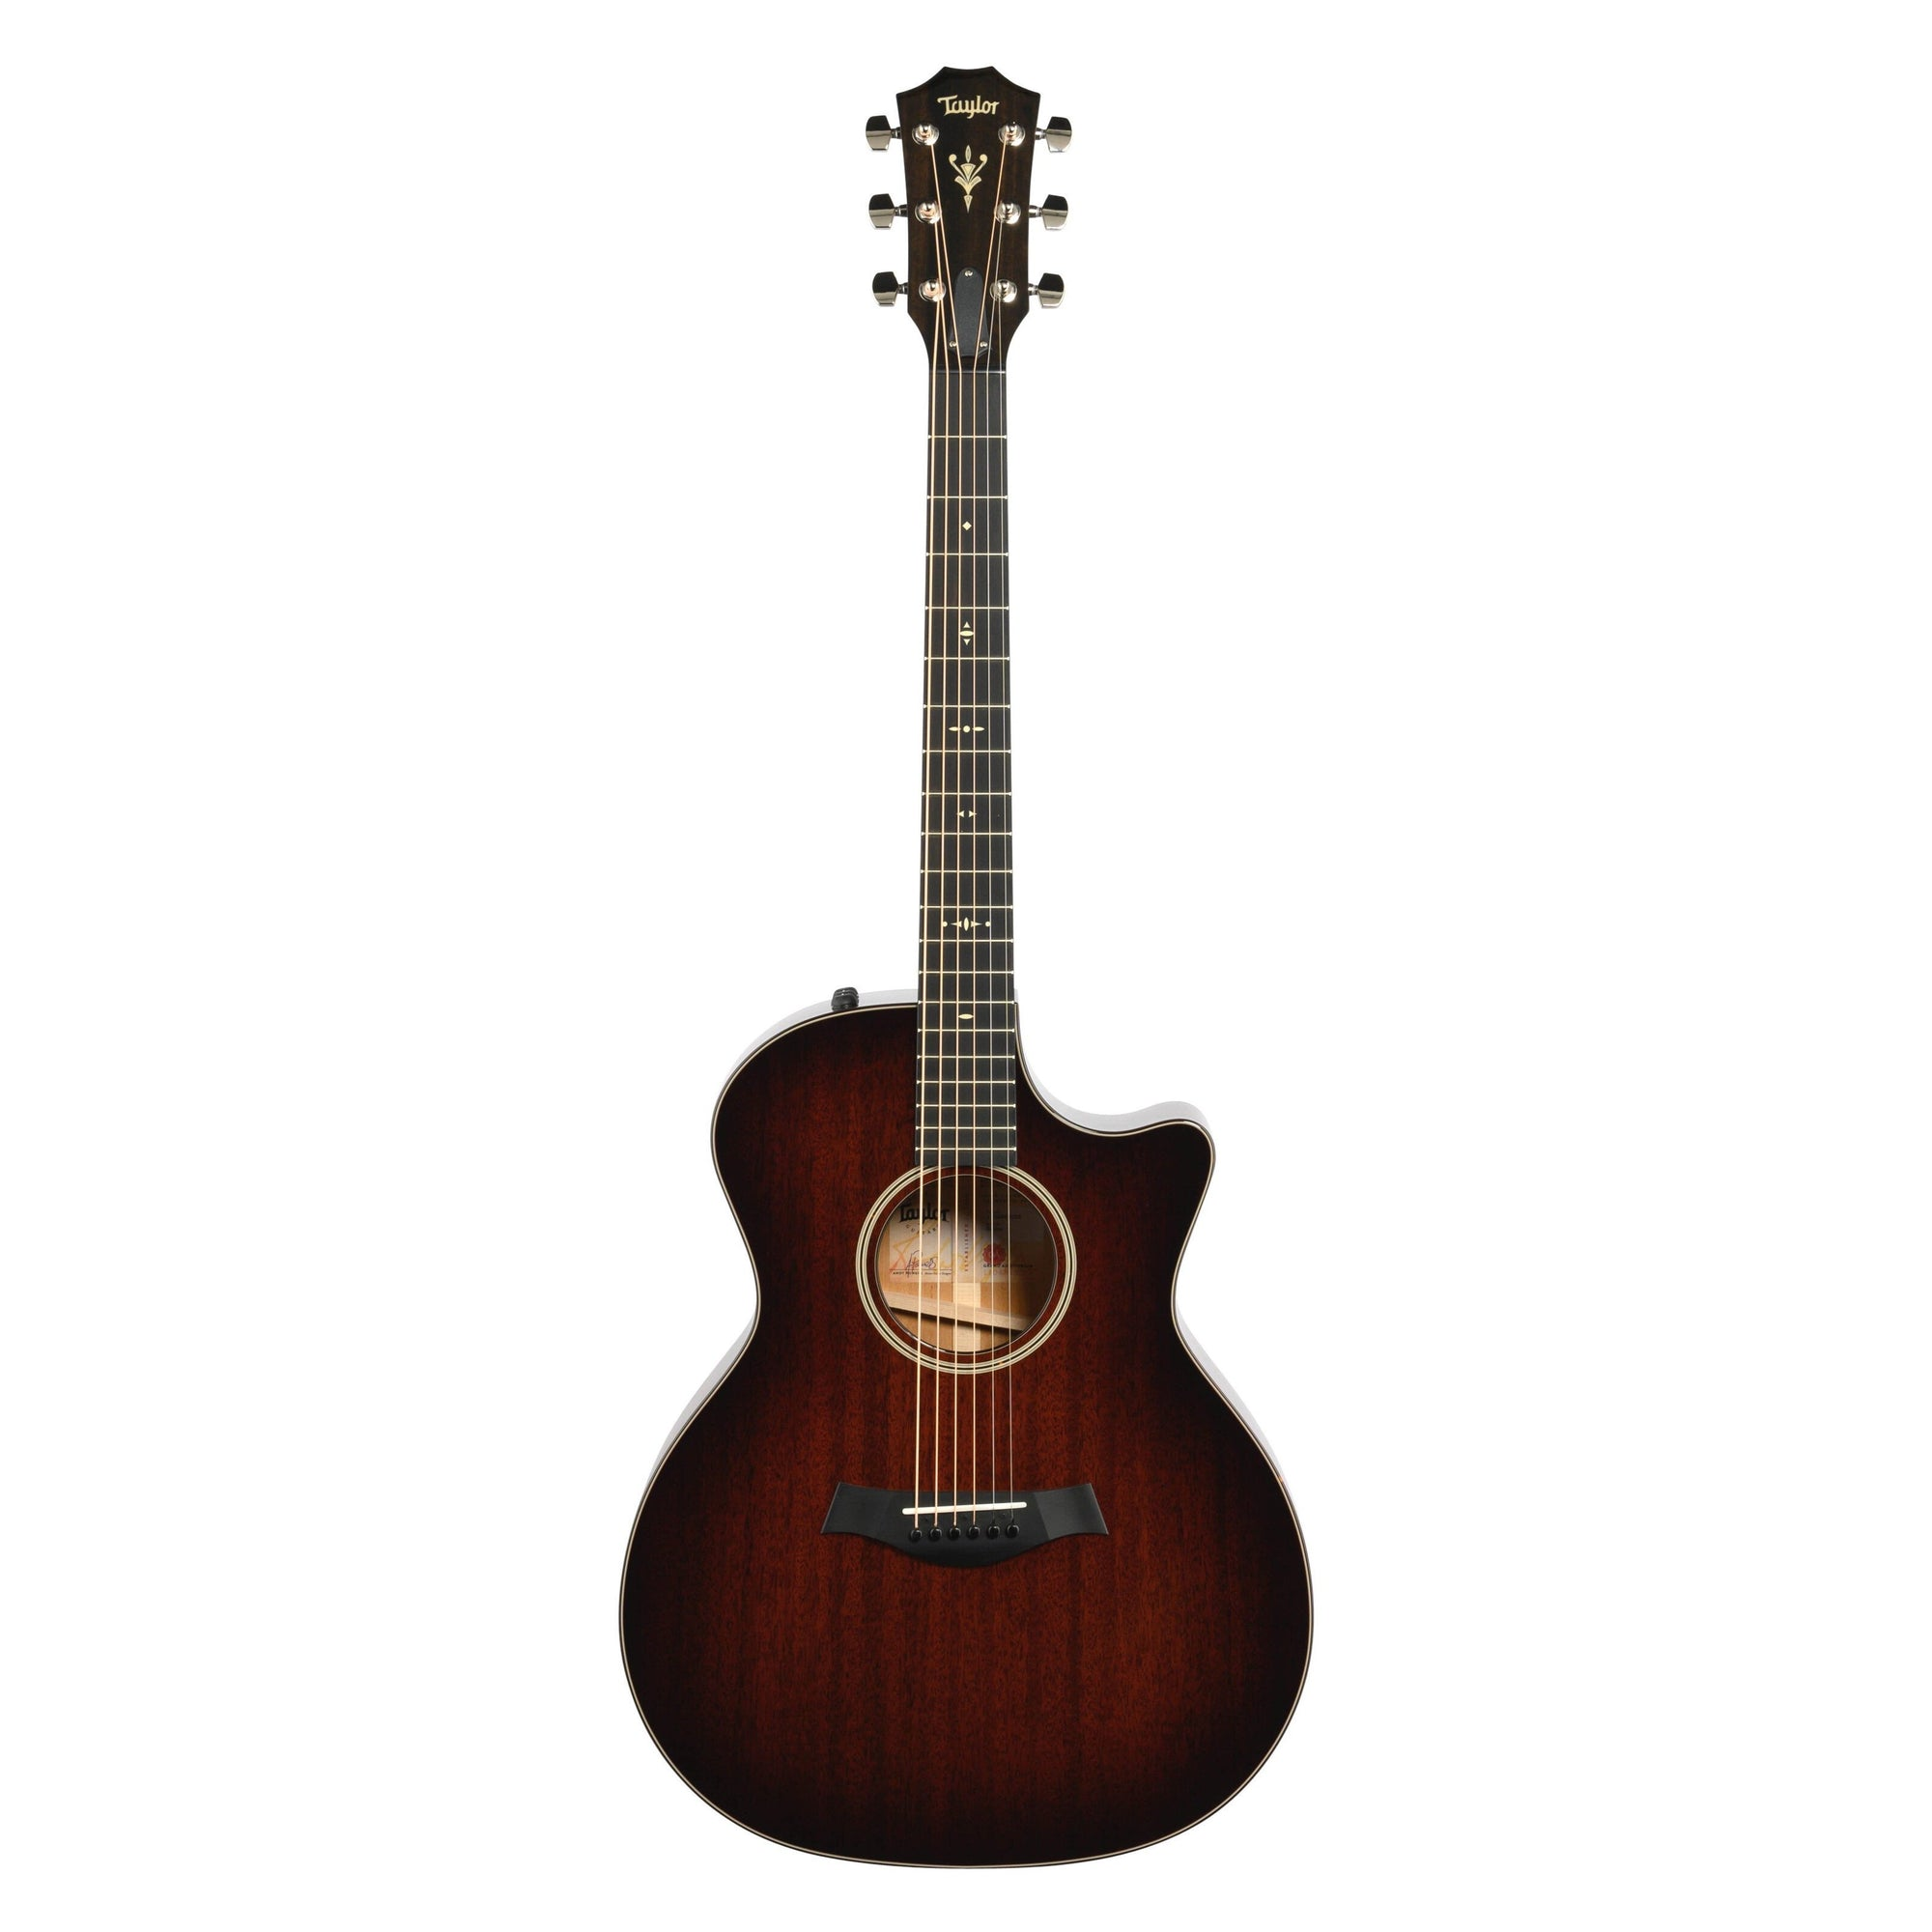 Taylor 524ceV Grand Auditorium Acoustic-Electric Guitar (with Case)